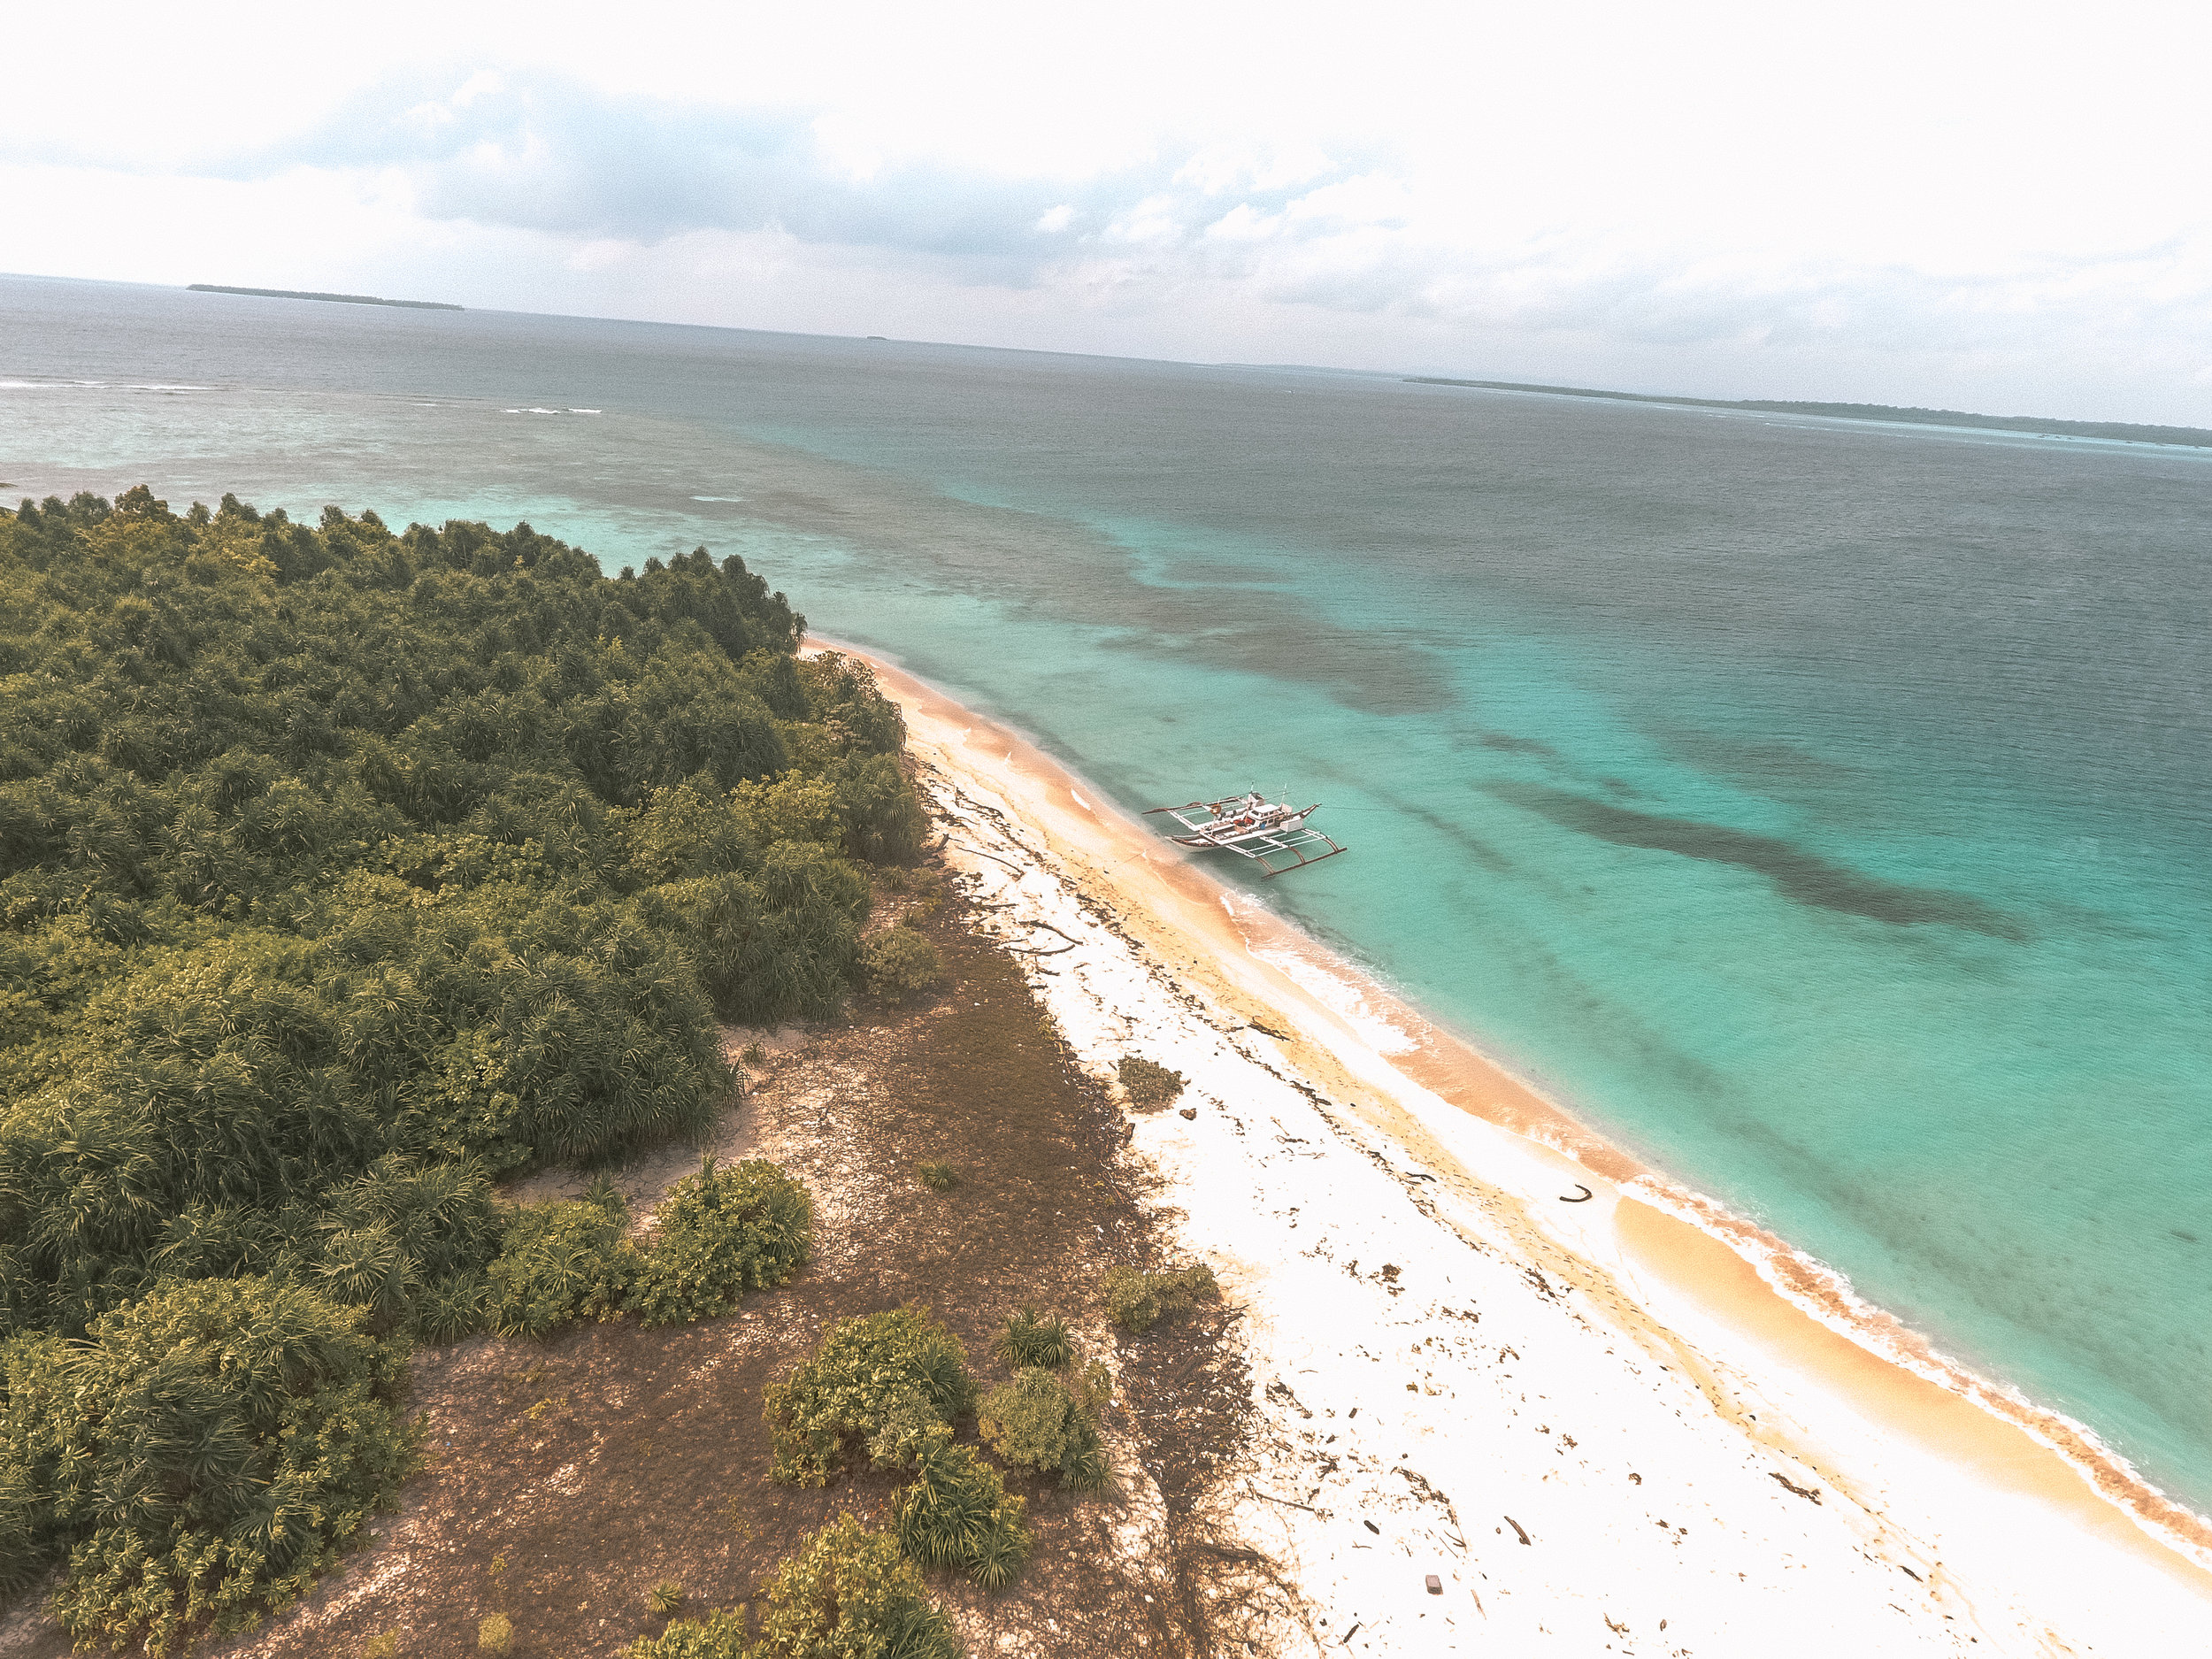 Viewing one of Balabac's many islands from the sky. Photo by Jhasper Reganit.